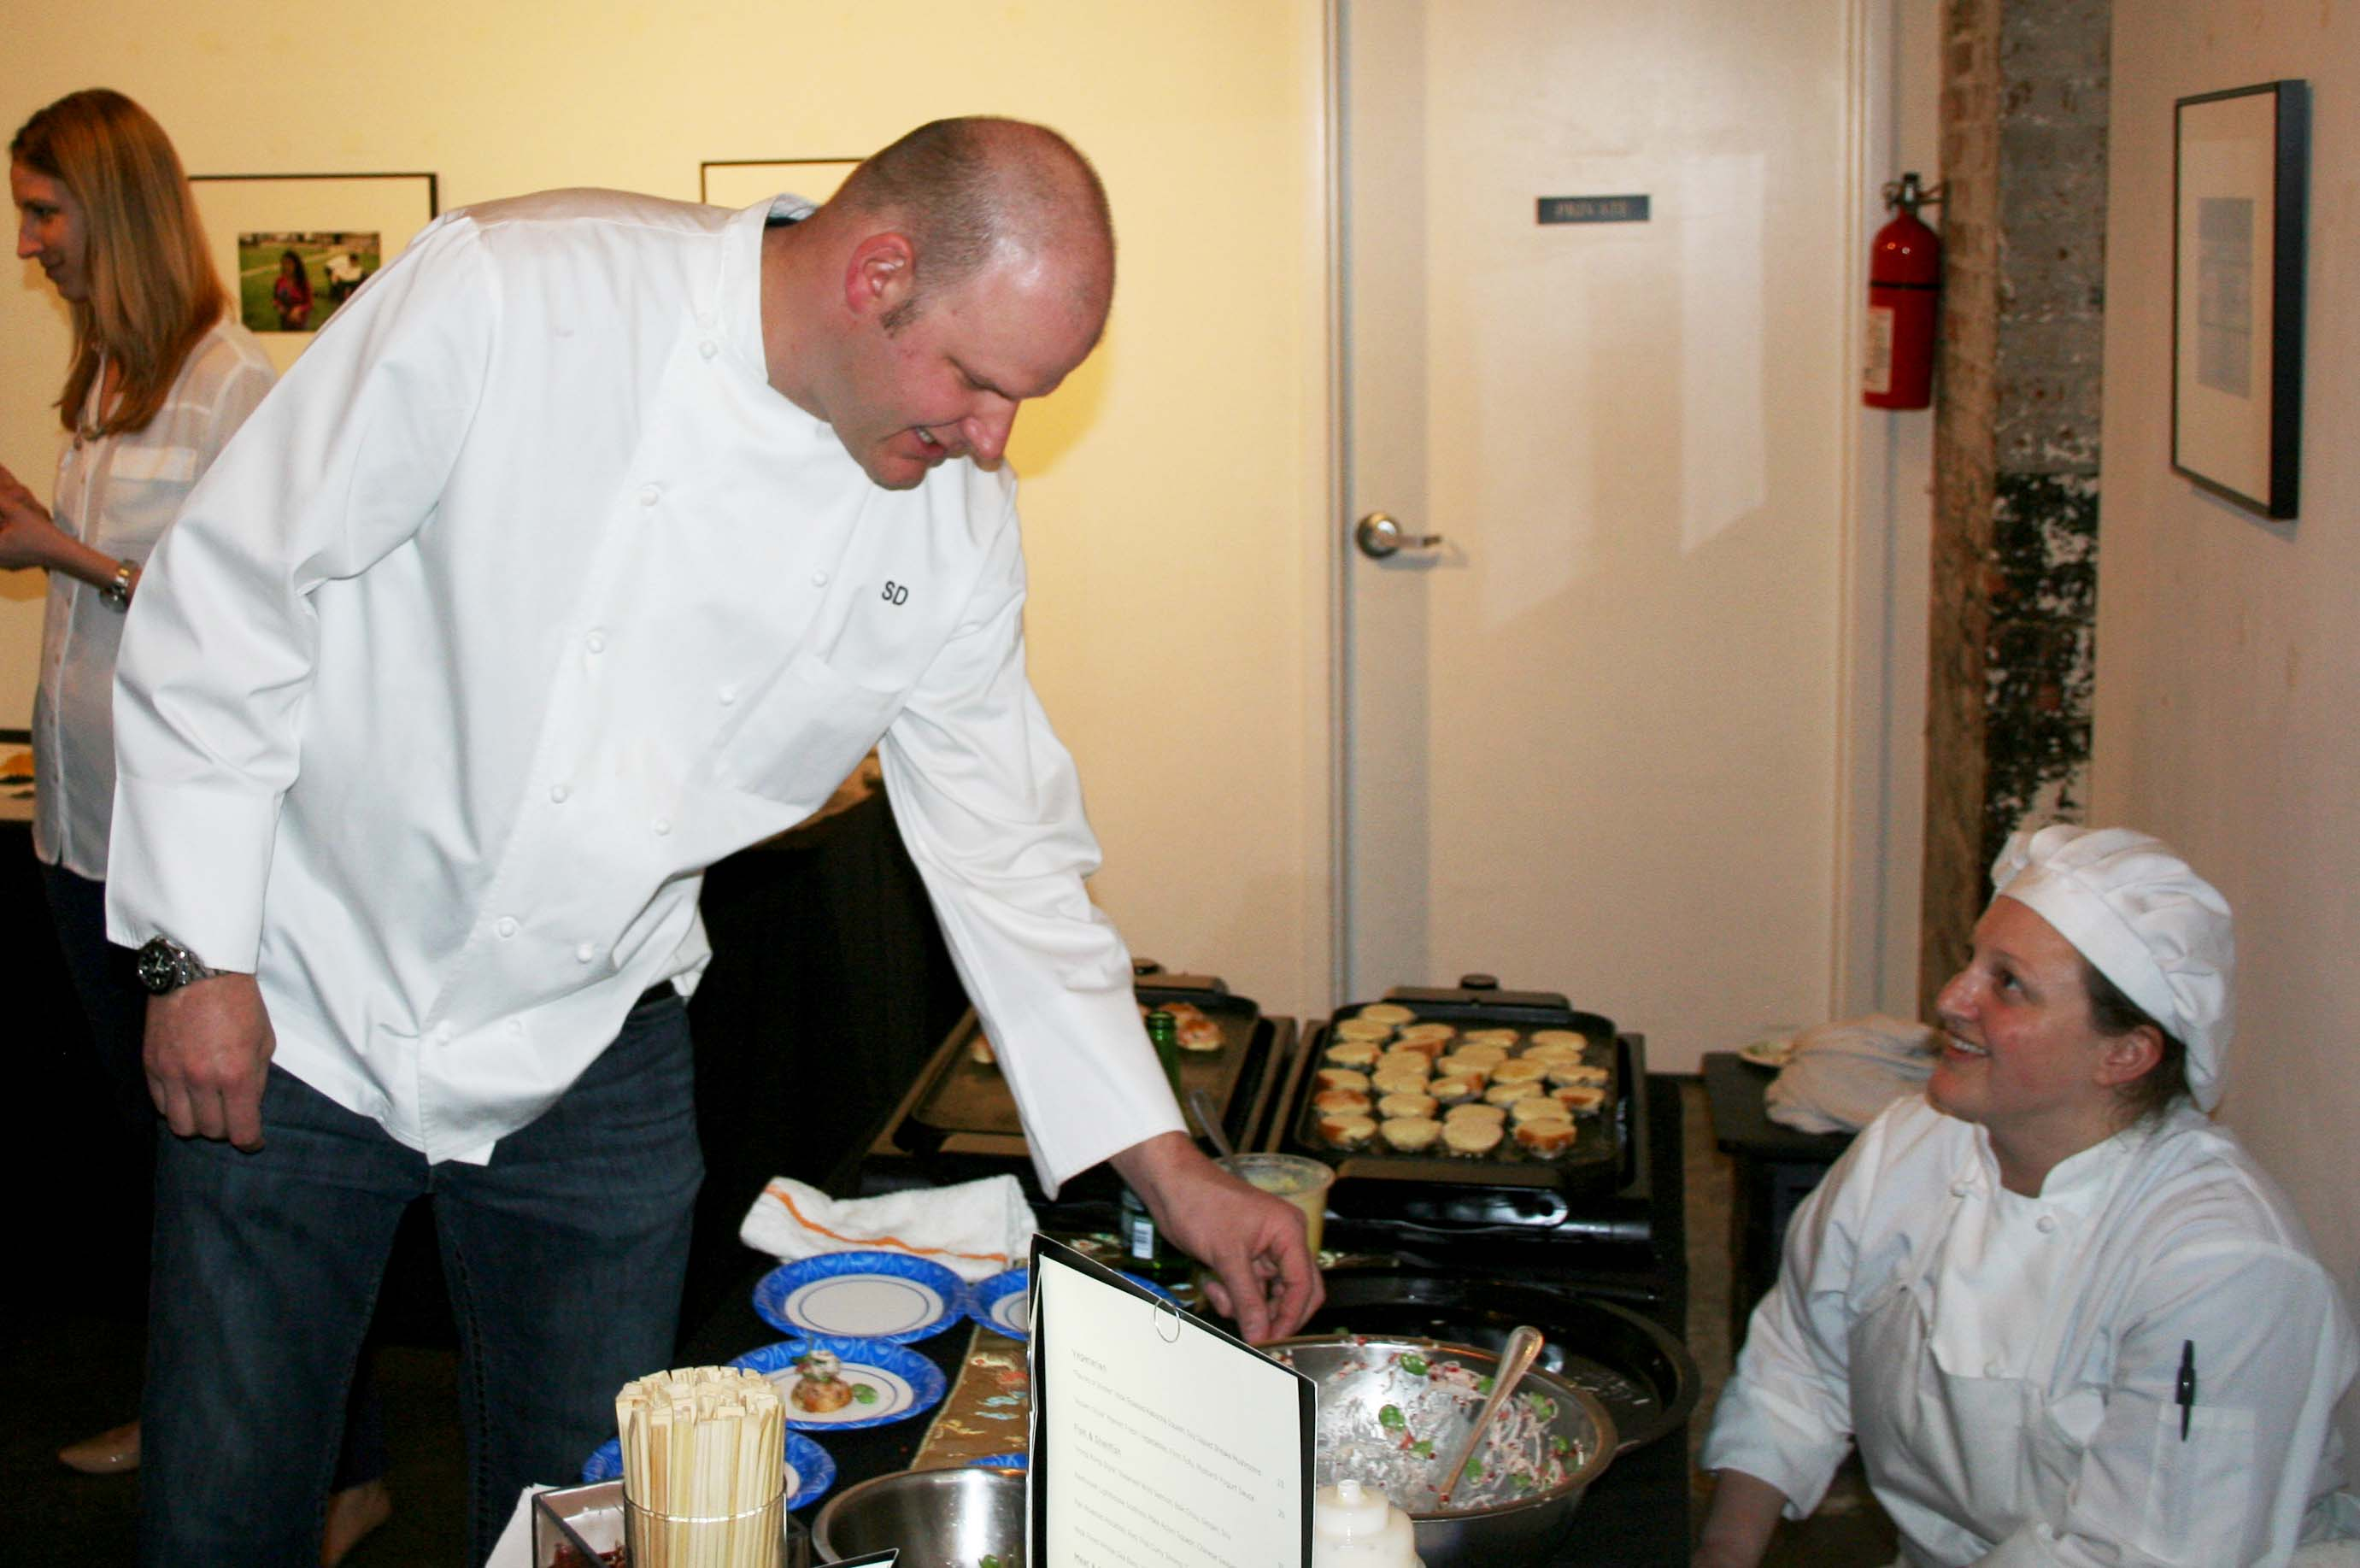 Chef Scott Drewno from The Source will defend his 2013 and 2014 titles. (Photo: Mark Heckathorn/DC on Heels)